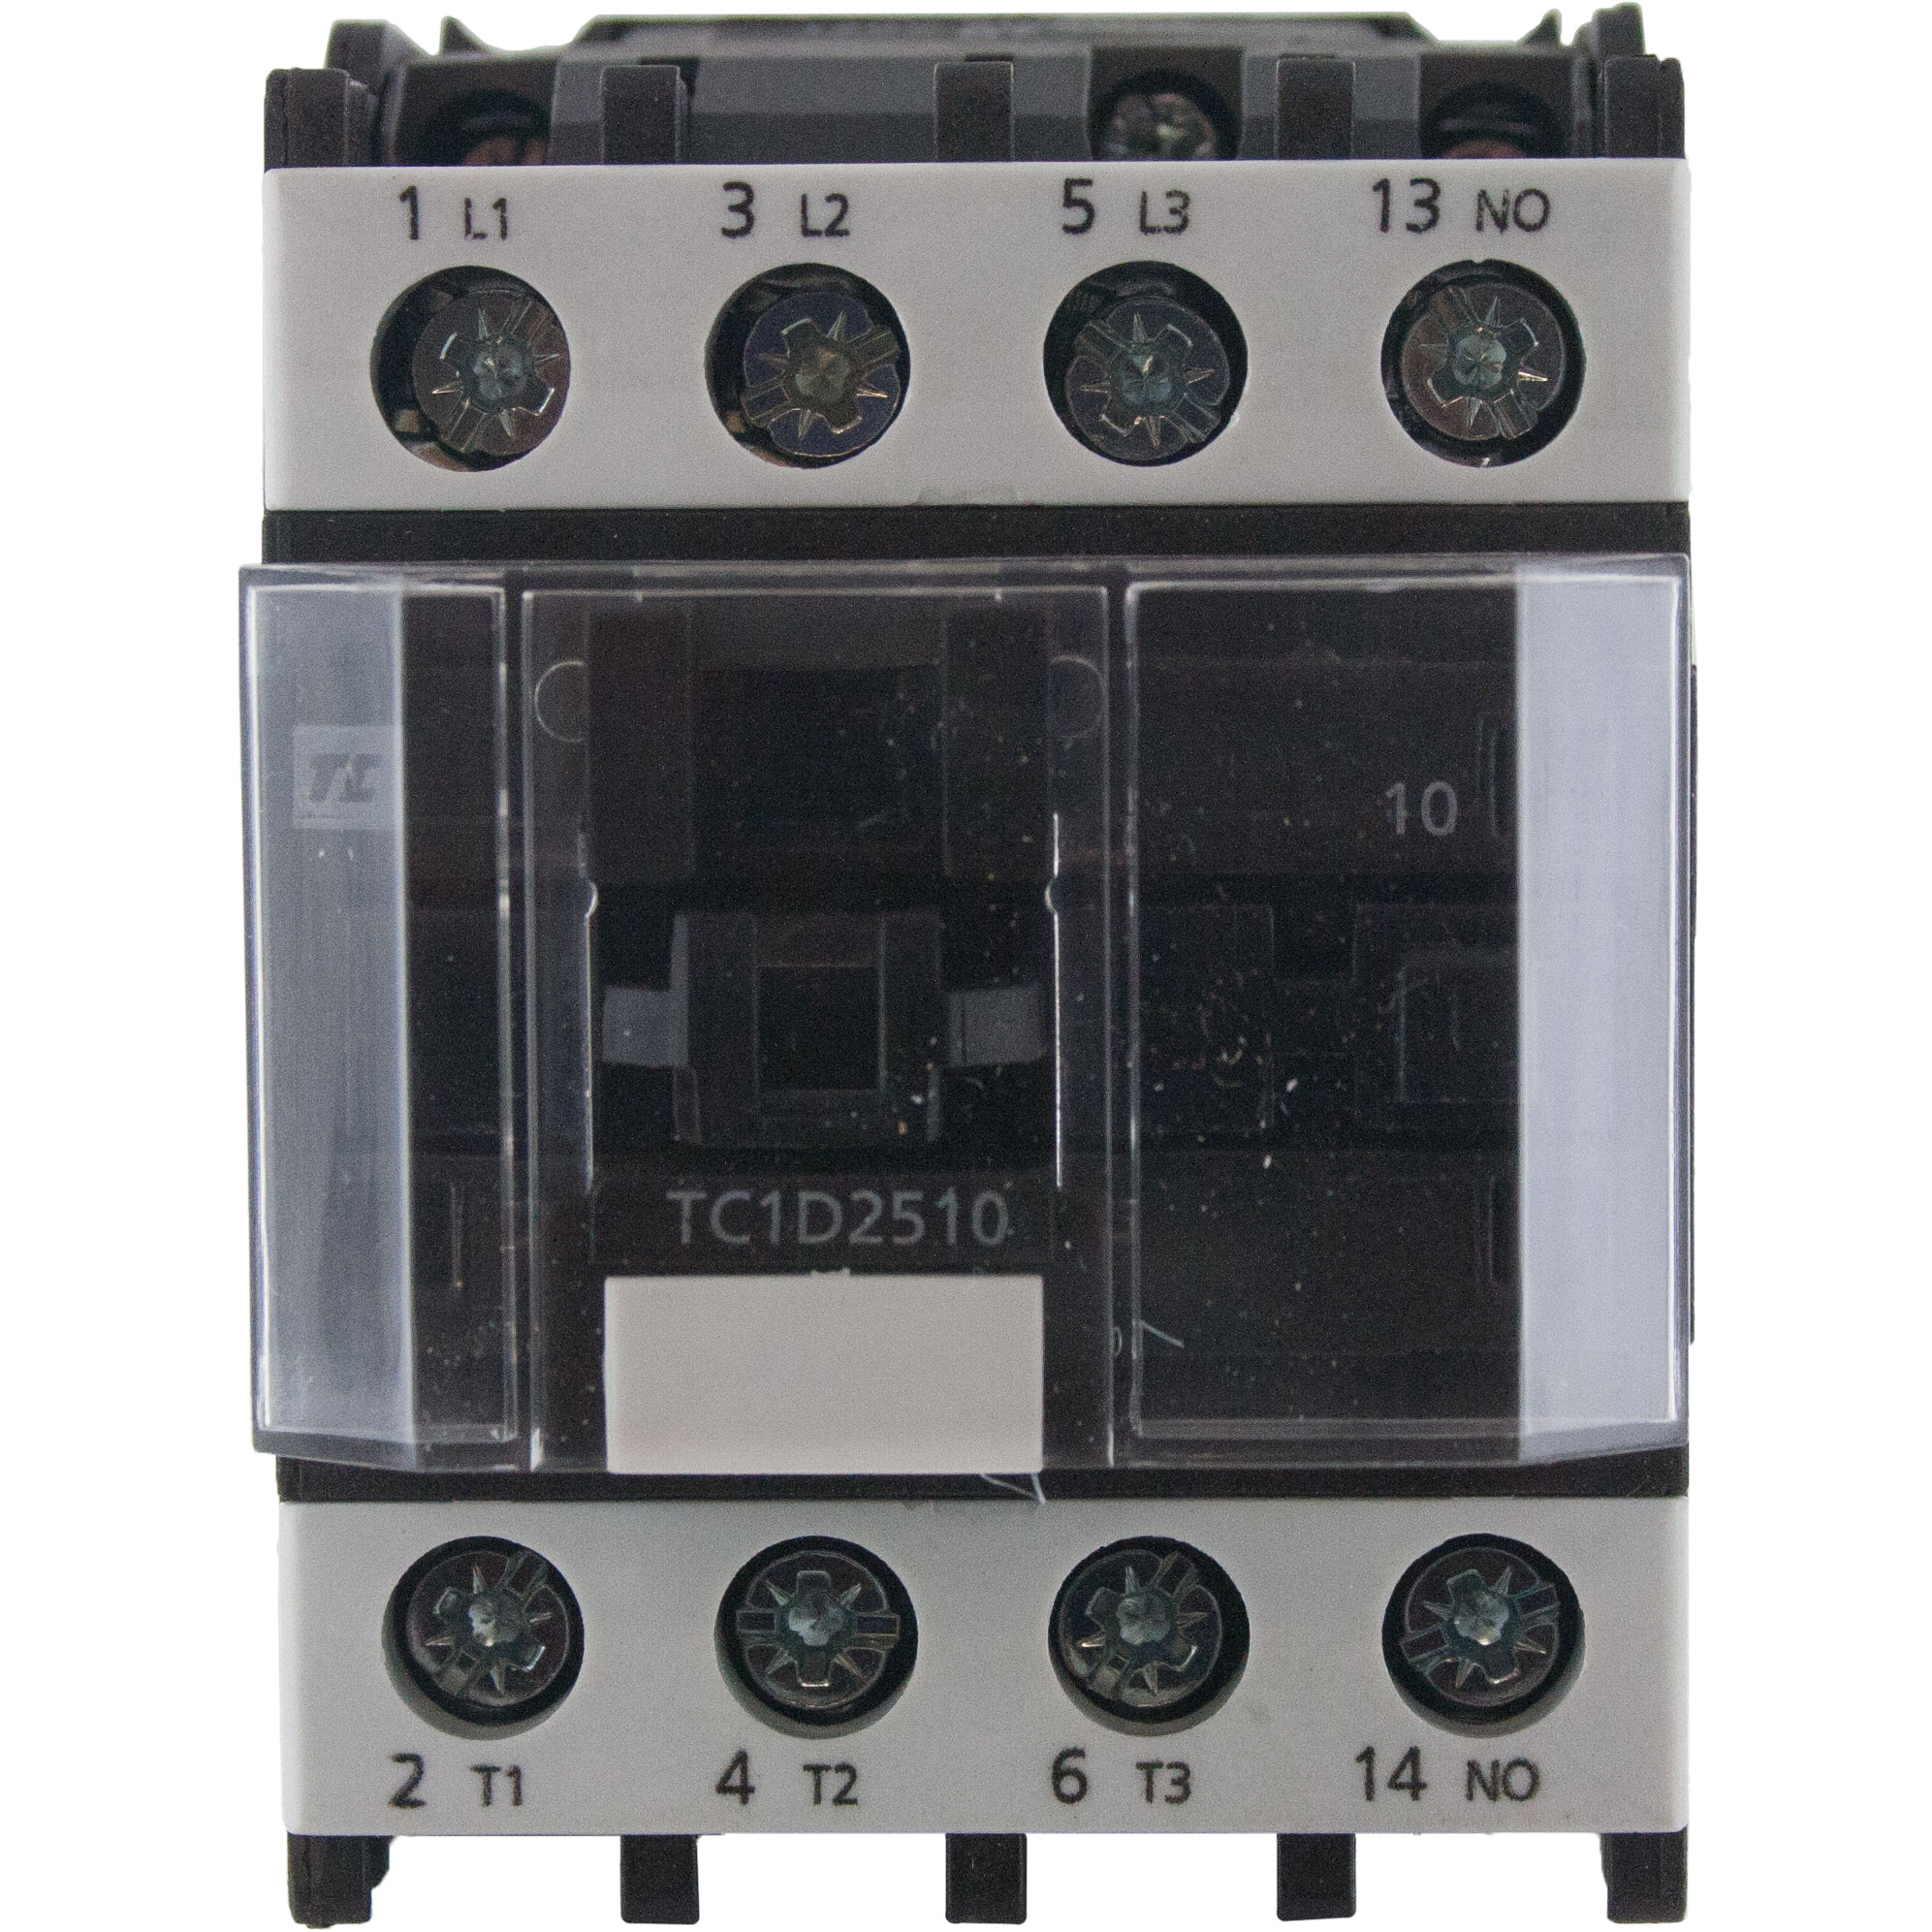 3 Pole Contactor 25 Amp 1 N O 24 Volt Ac Coil Tc1d2510b7 Elecdirect Non Grounding Phase Wiring